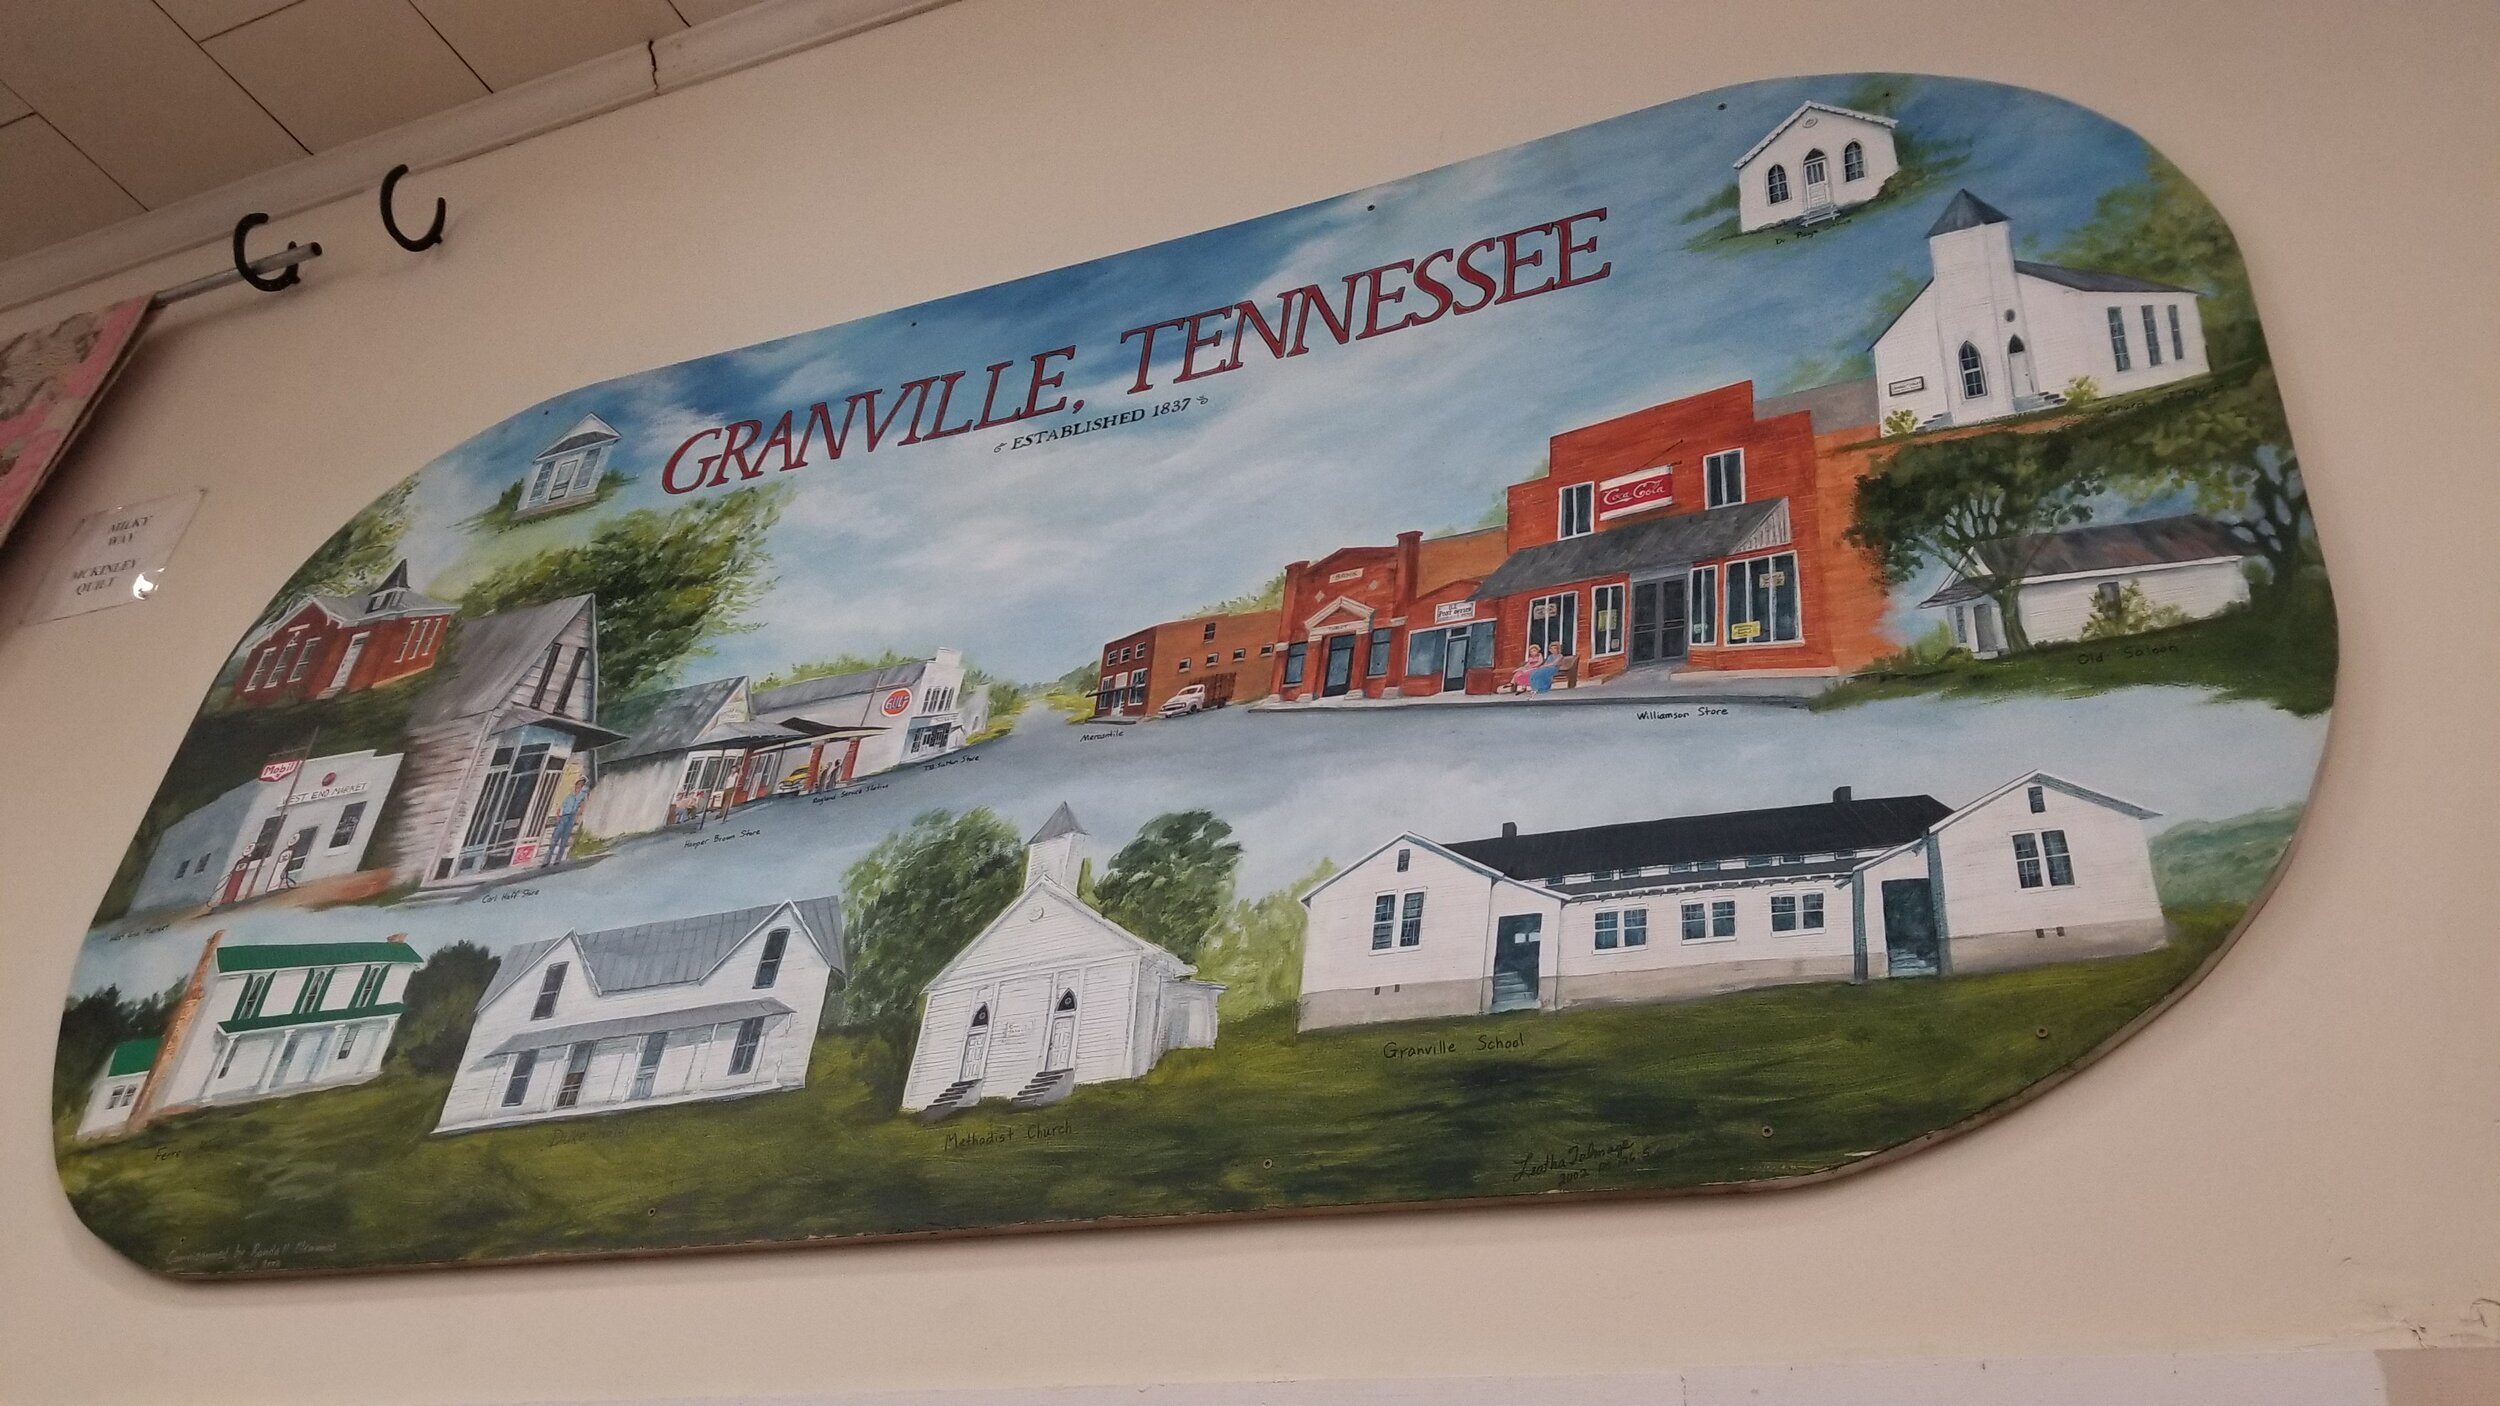 The Granville History Museum guides you through the town's history with hundreds of pictures, artifacts and memorabilia.